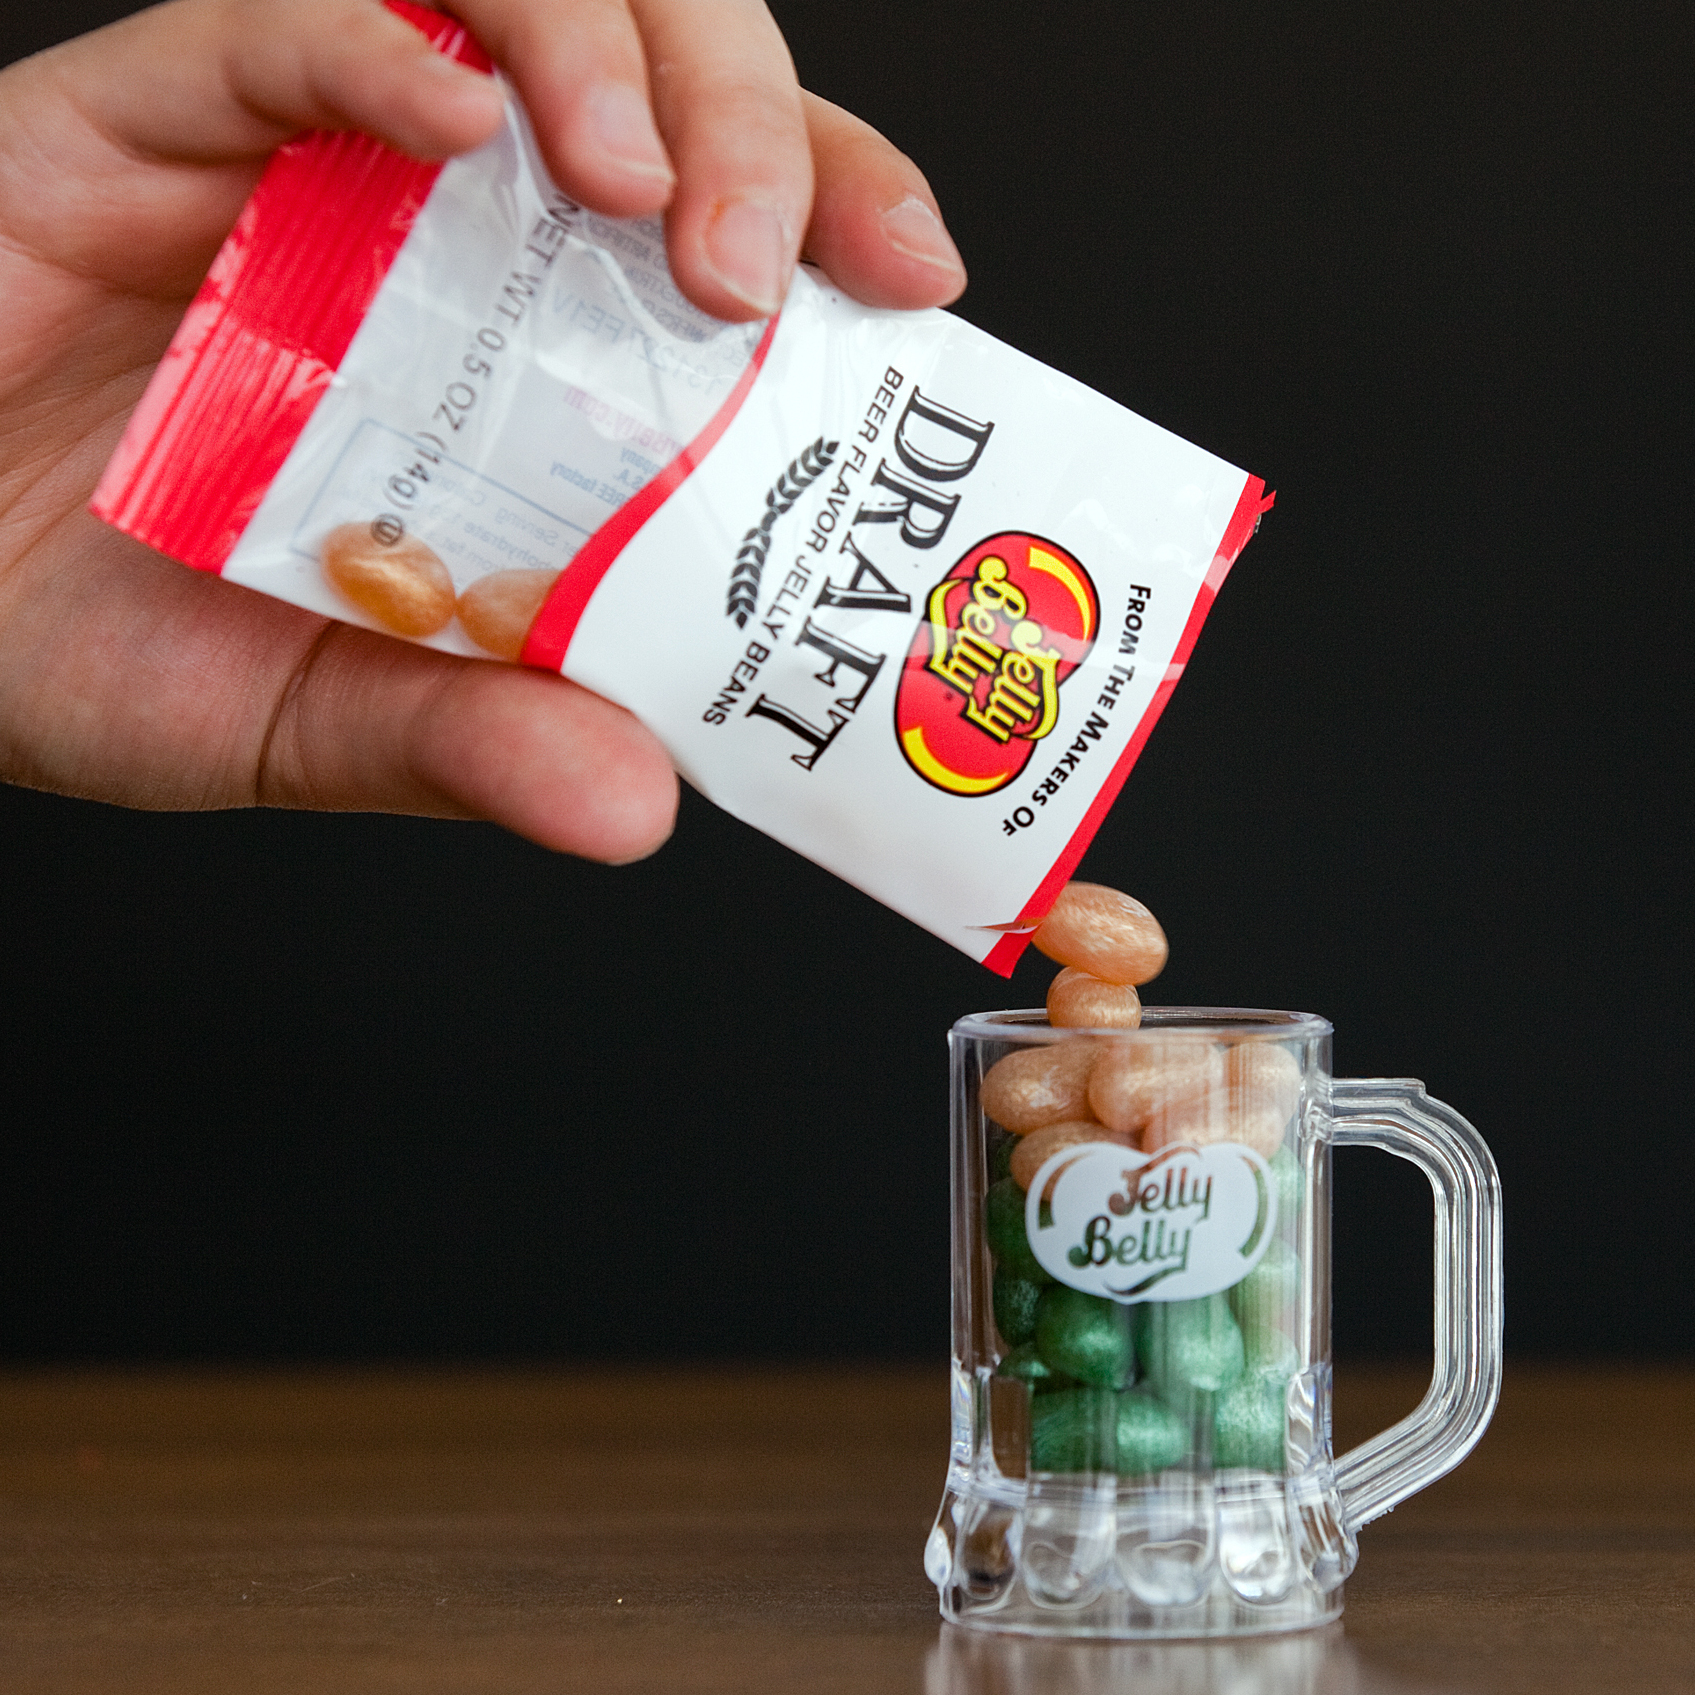 One new flavor from Jelly Belly is called Draft Beer. But there's no tipple here: These beans are non-alcoholic.